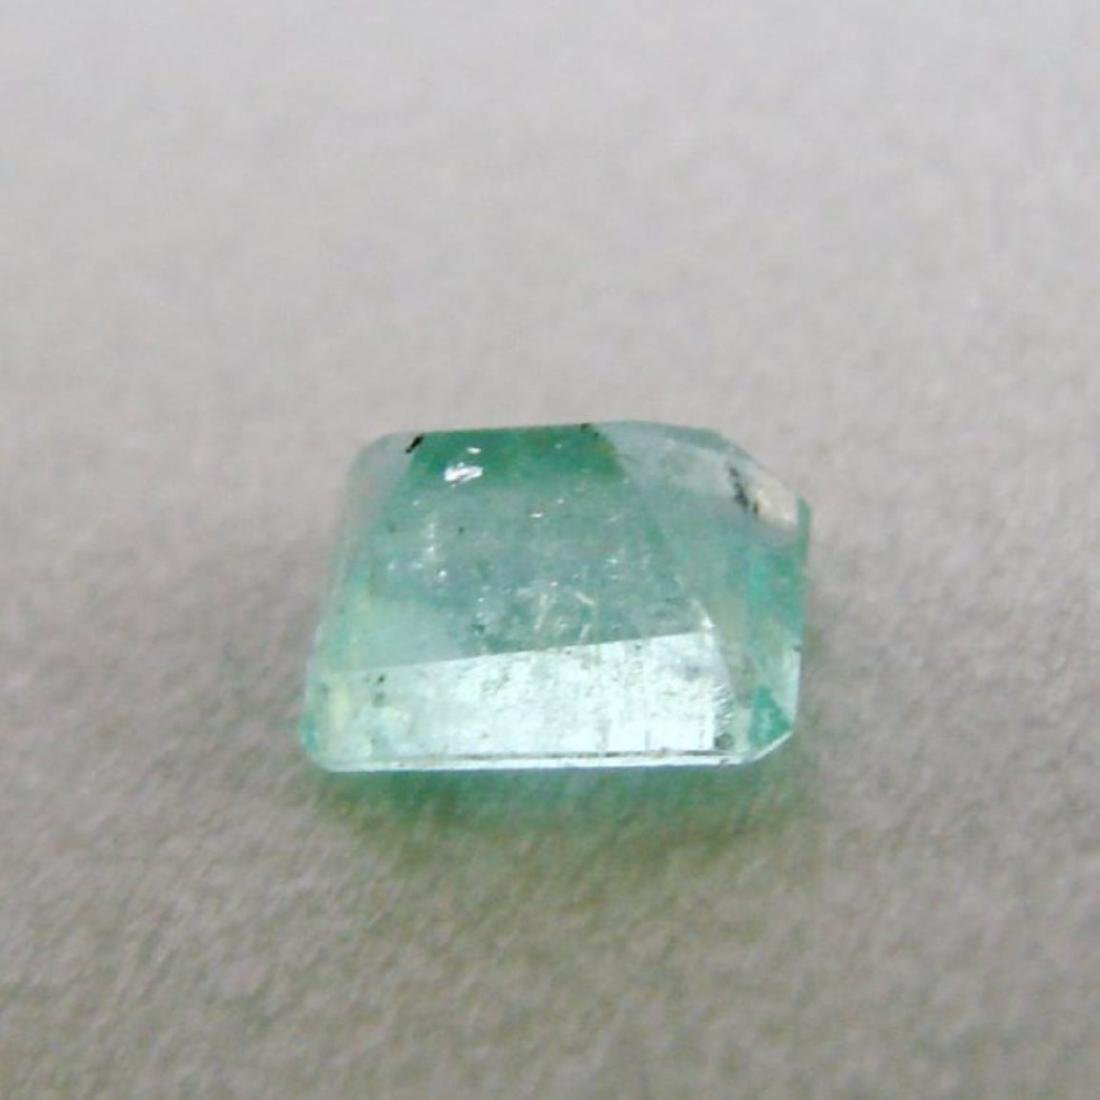 Colombia Emerald Octagon Facet 1.38Ct 7.6x5.6x4.5 mm - 2